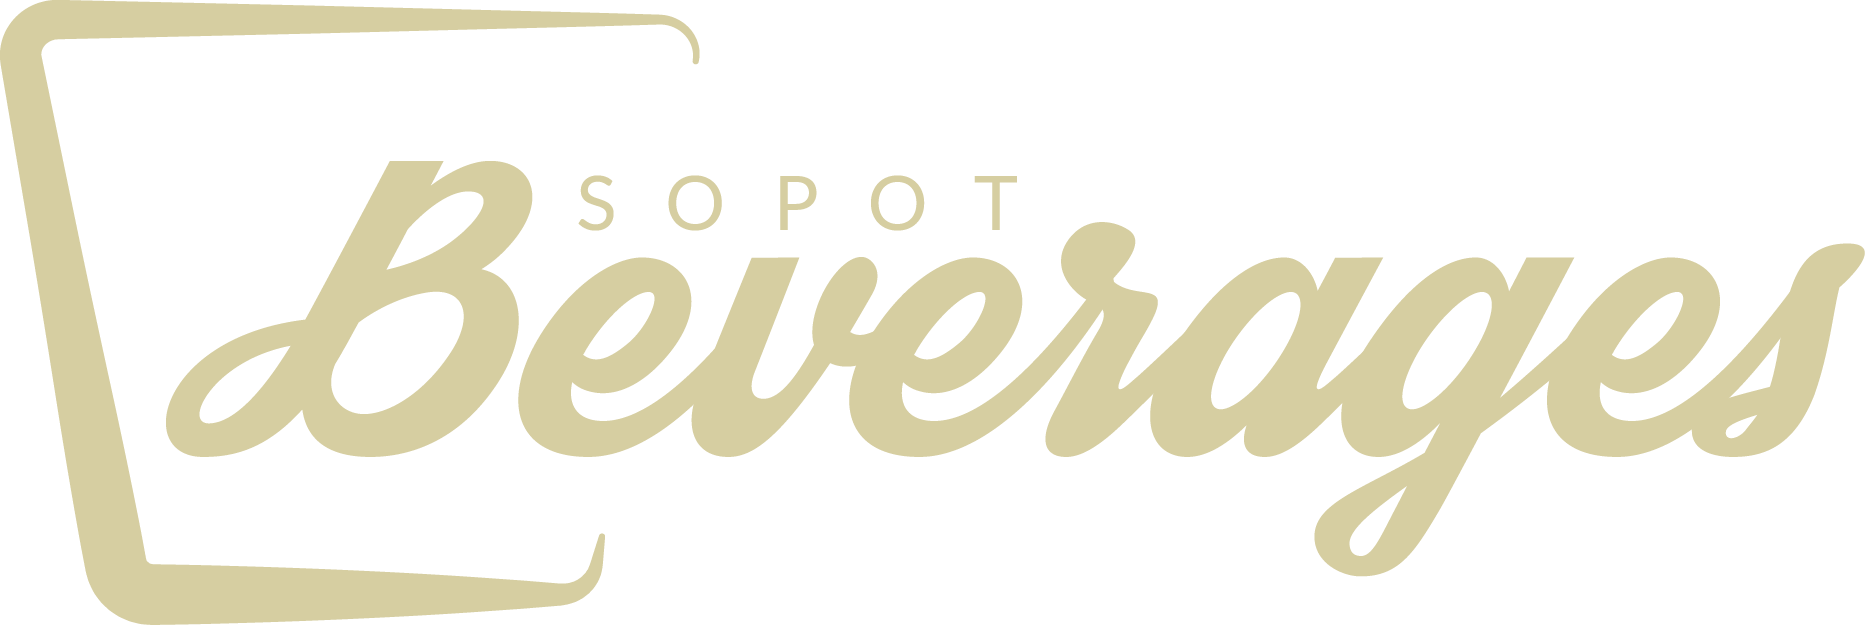 Sopot Beverages, logo